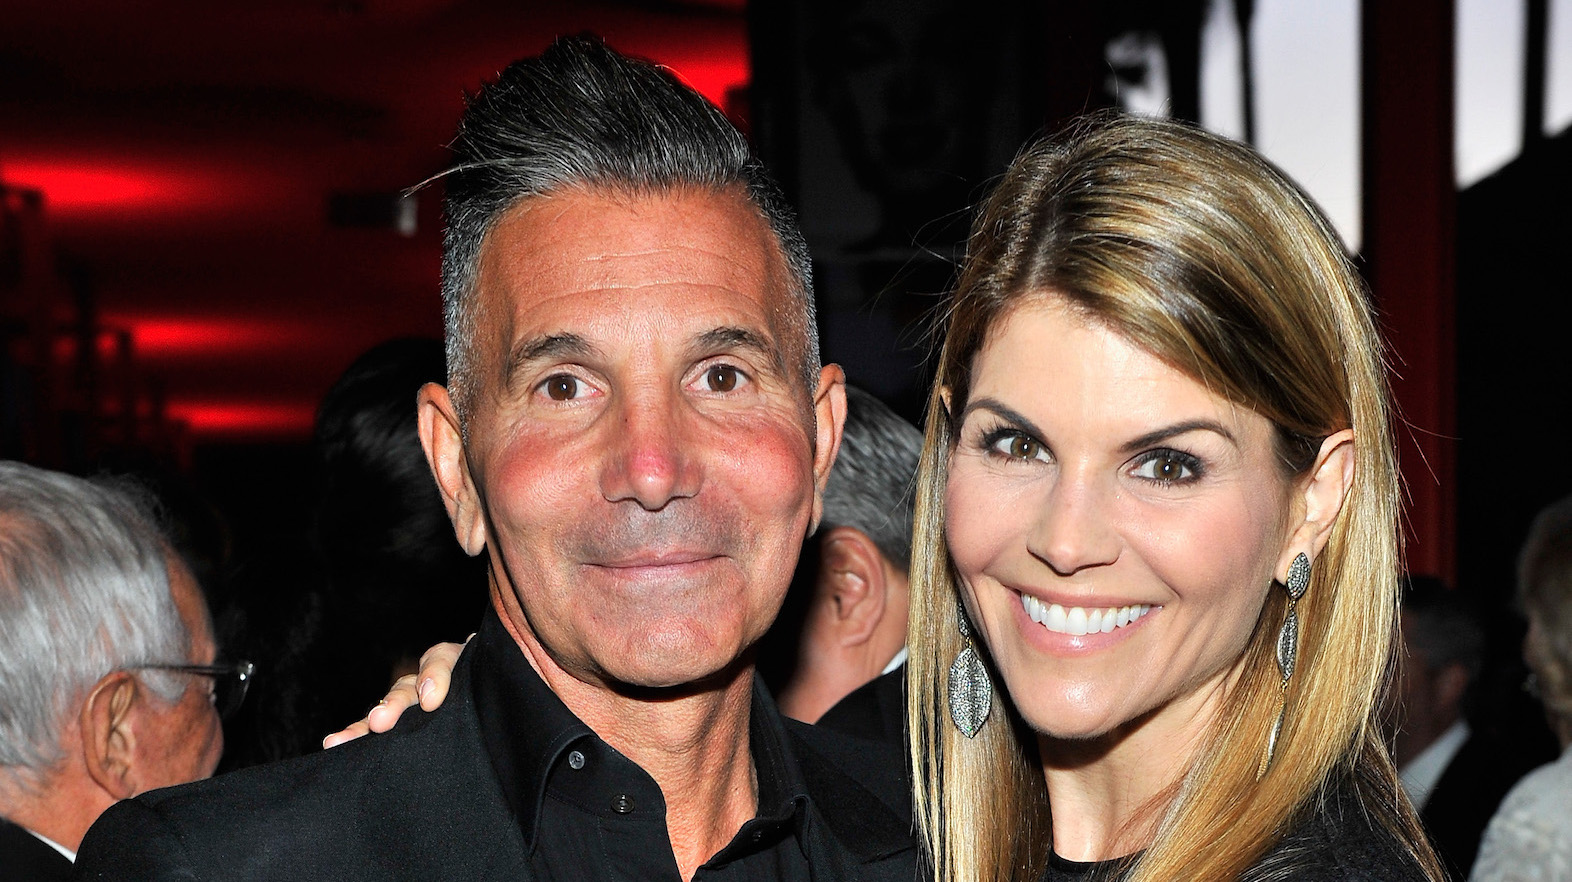 Lori Loughlin's Friends Are Blaming Mossimo Giannulli for 'Concocting' the College Admissions Scandal